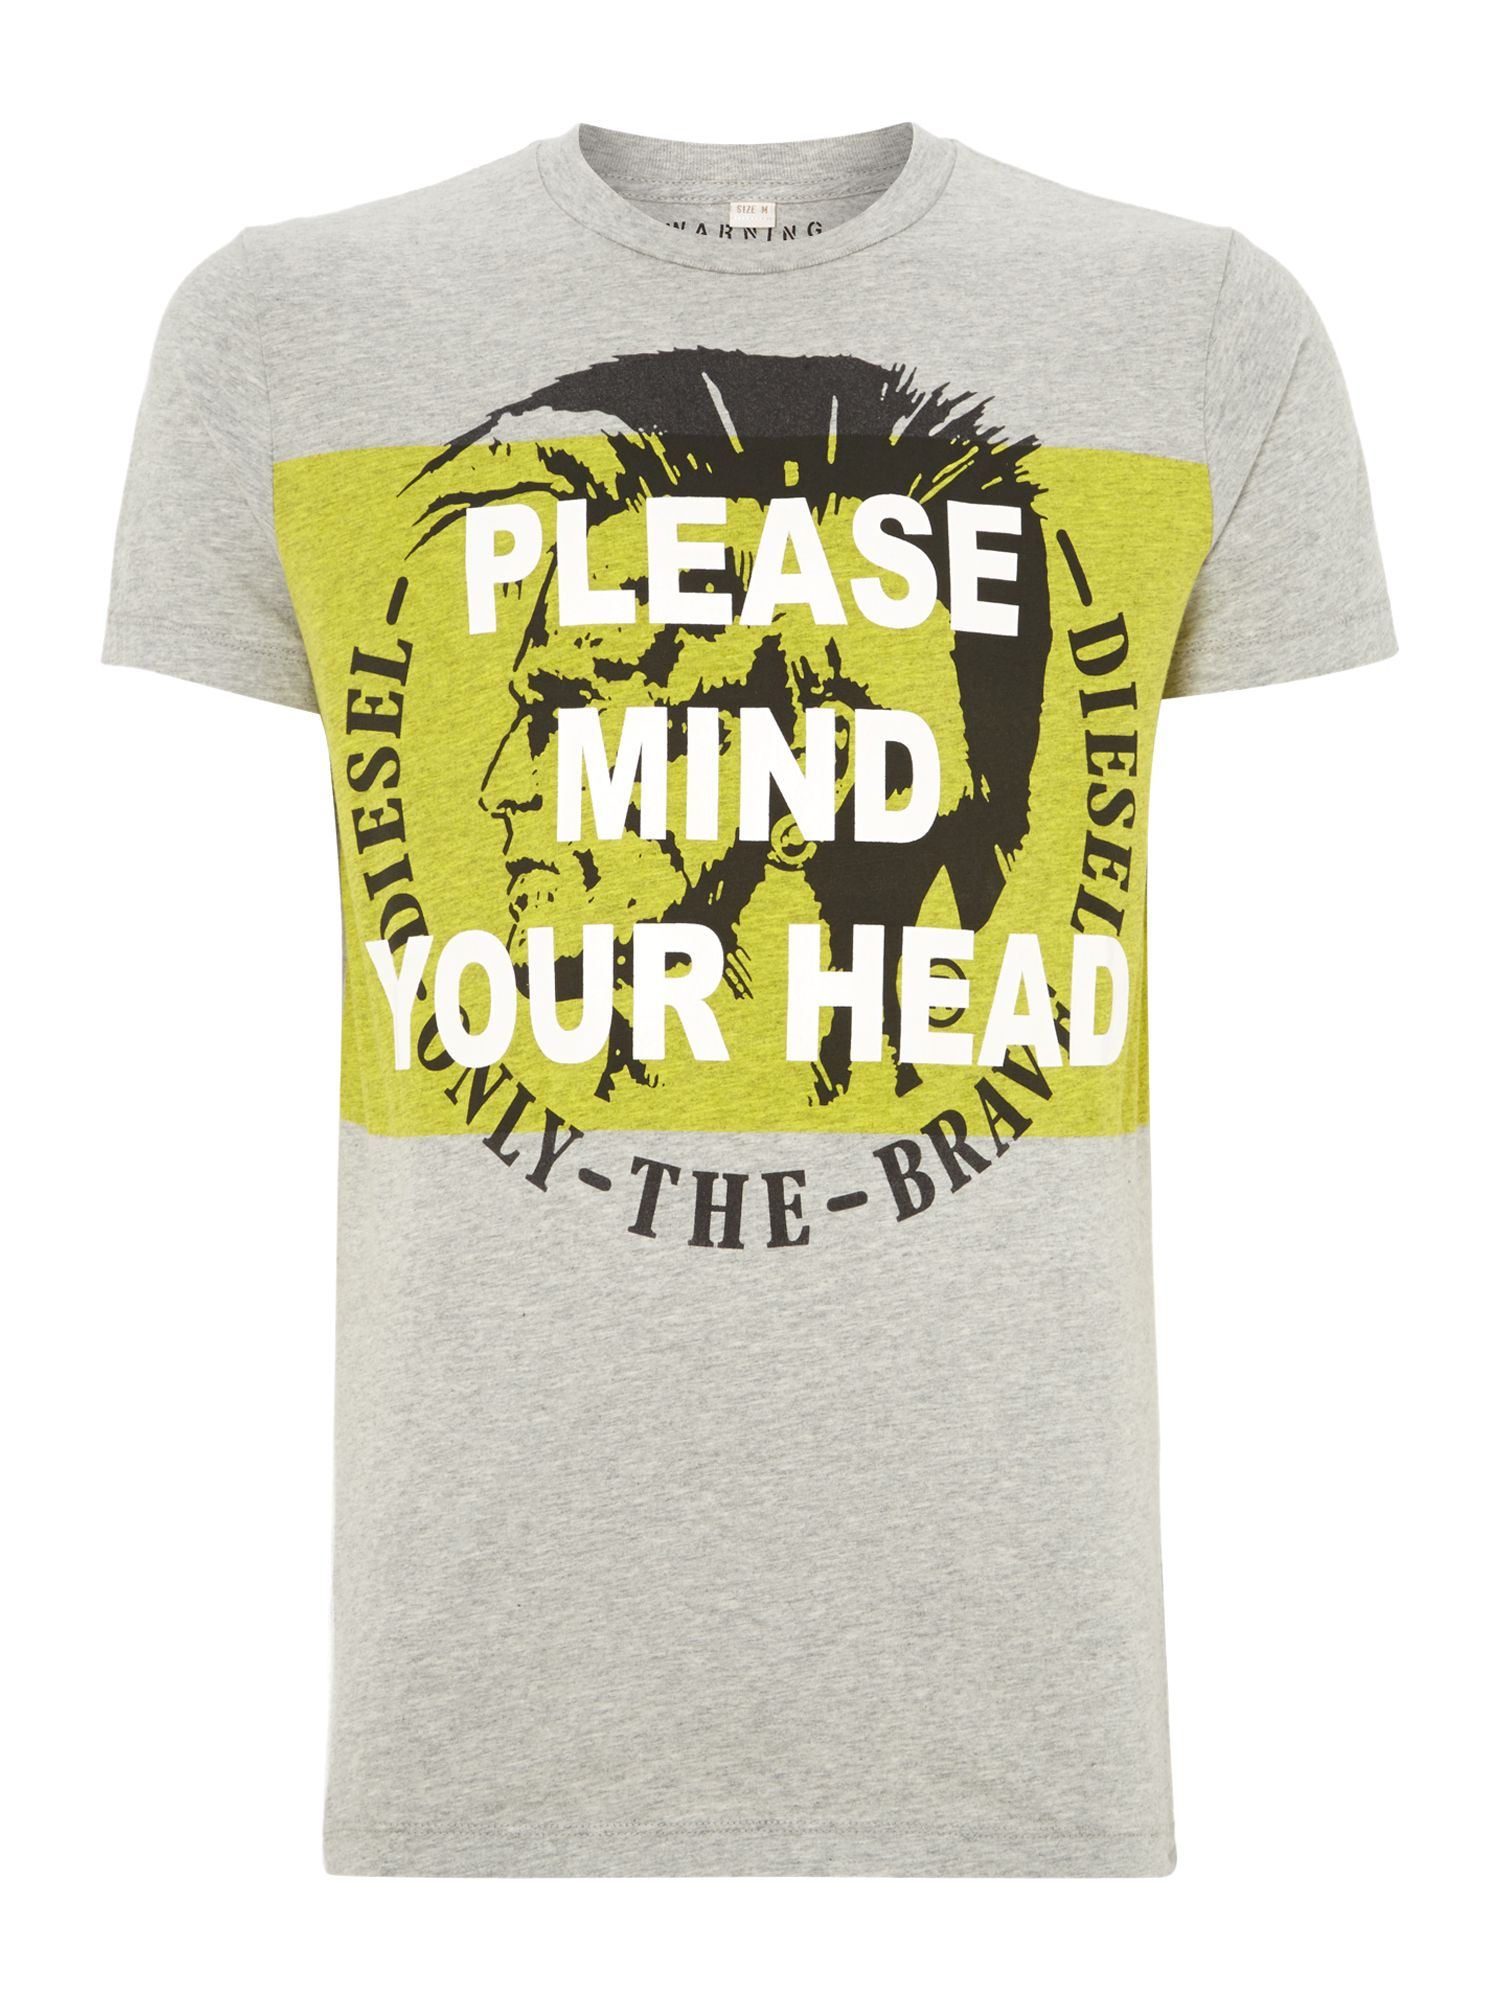 T-mind diesel mind your head t shirt